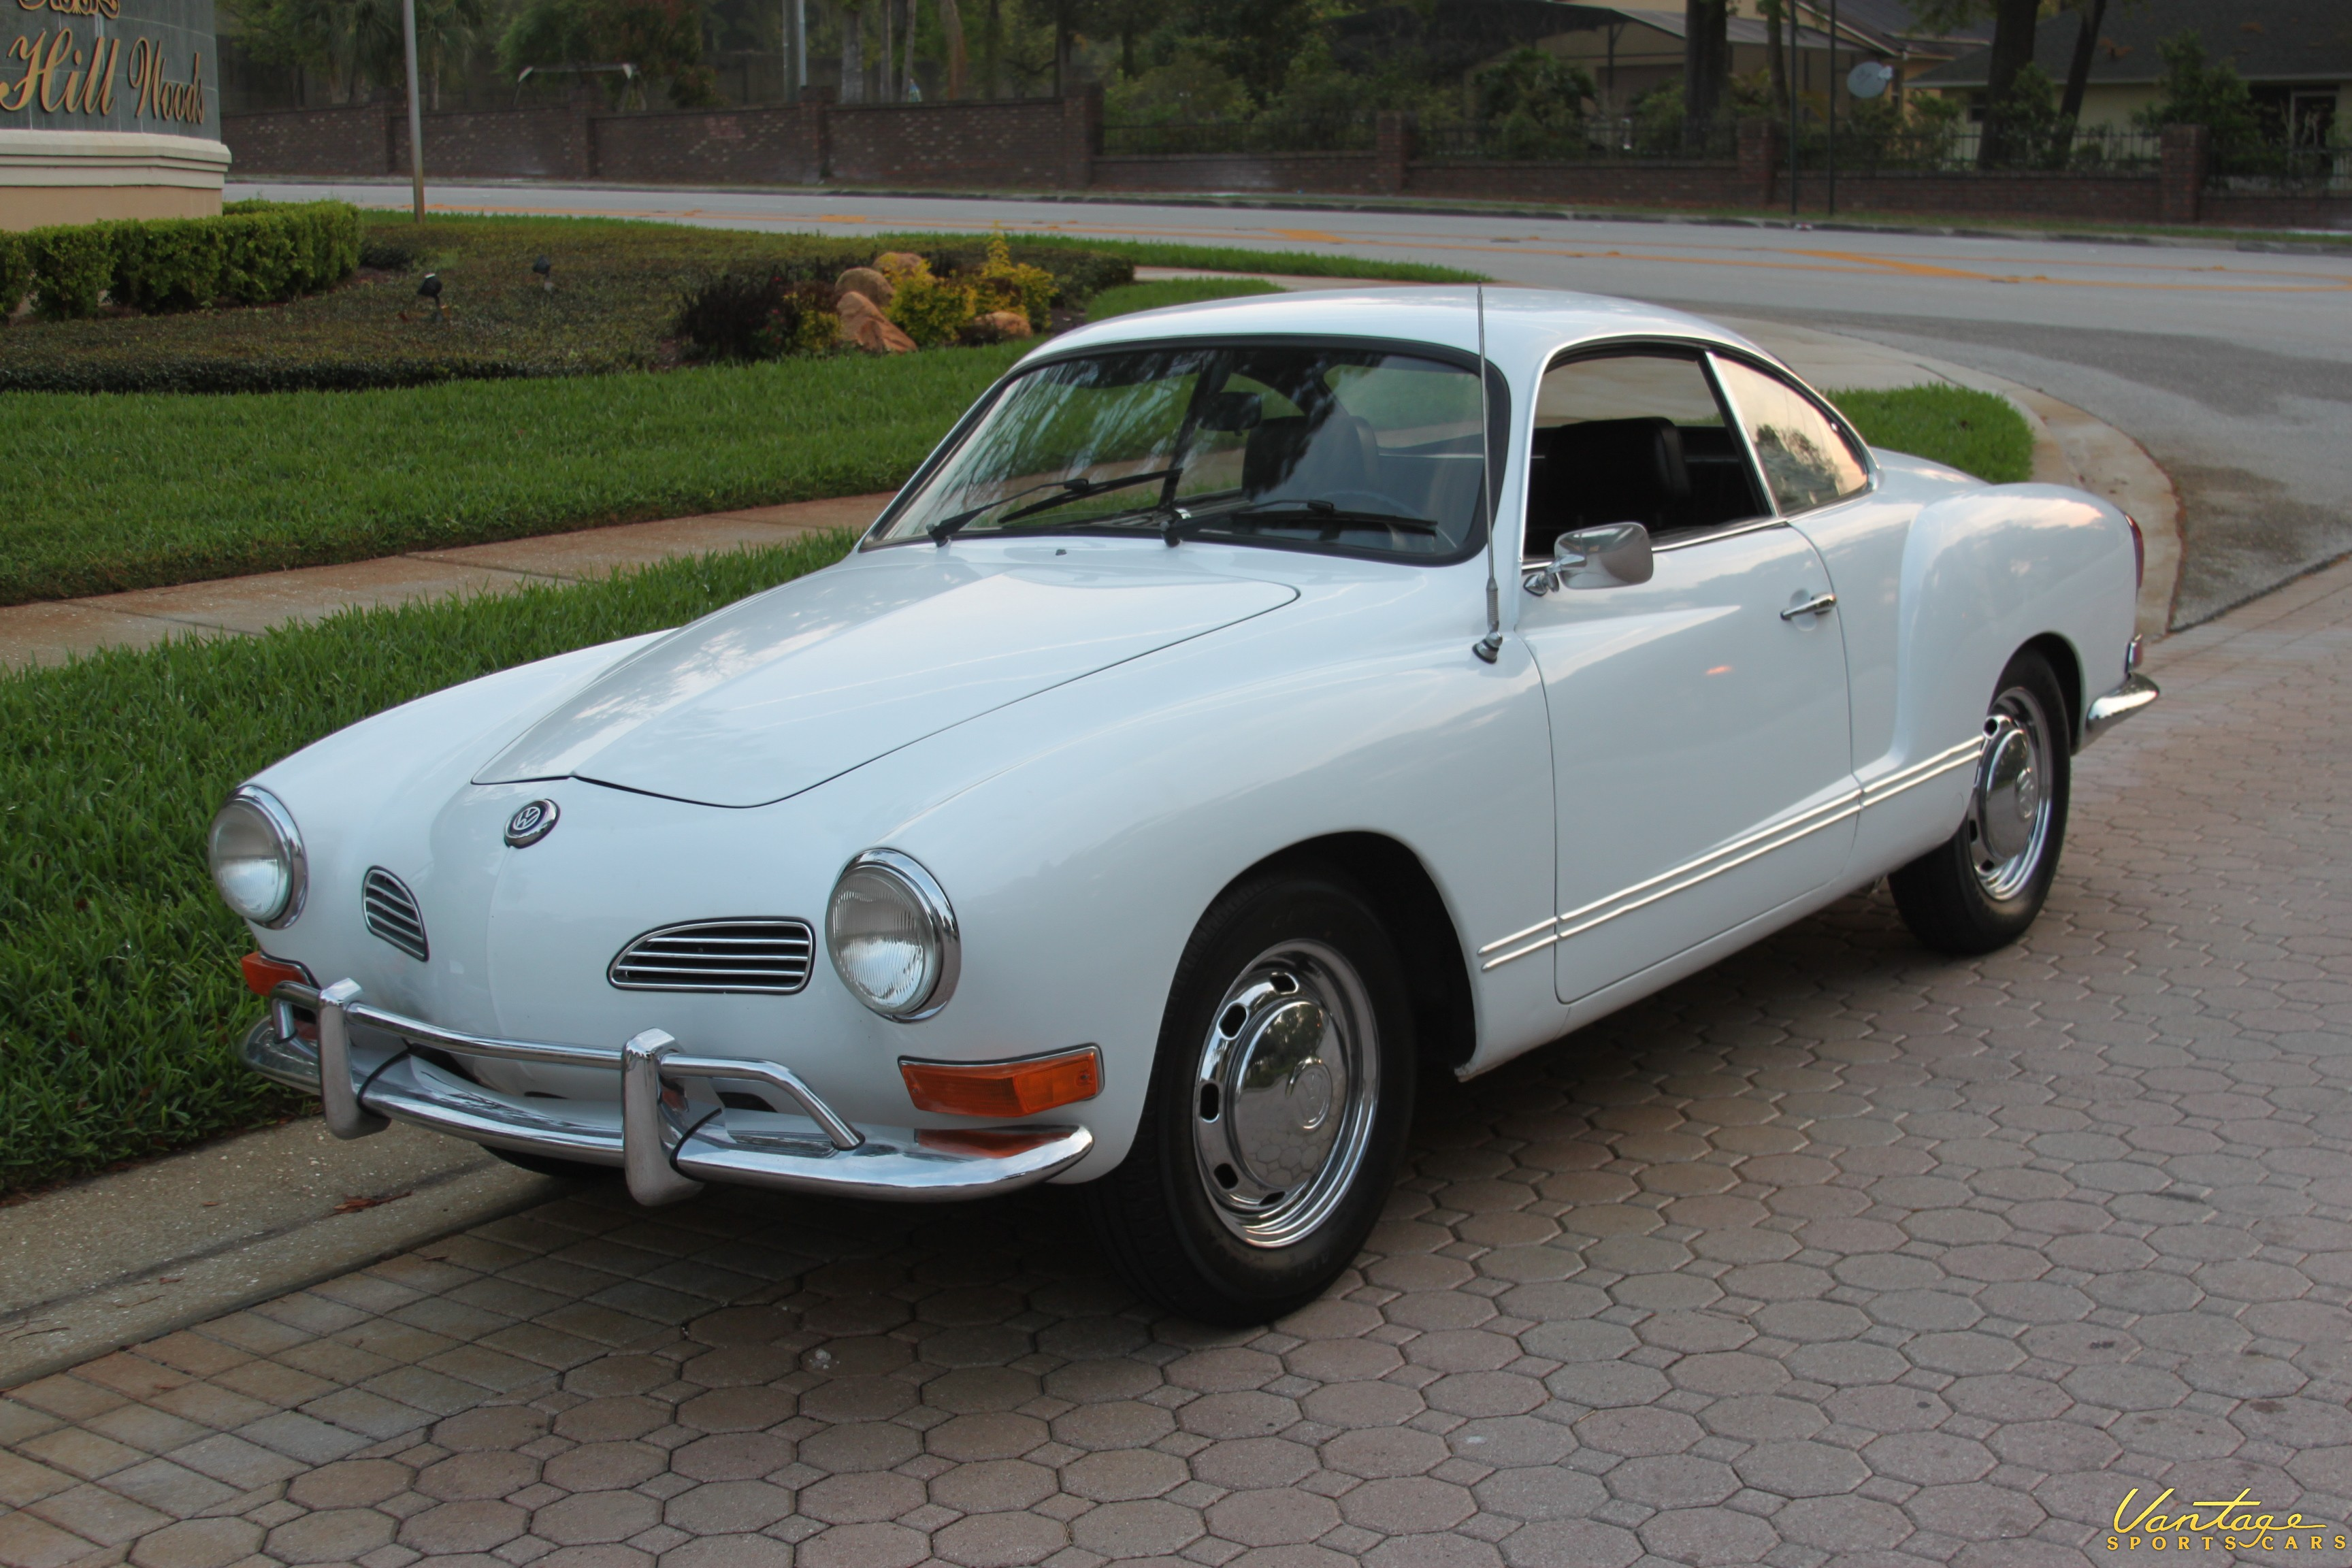 1971 vw karmann ghia sold vantage sports cars. Black Bedroom Furniture Sets. Home Design Ideas